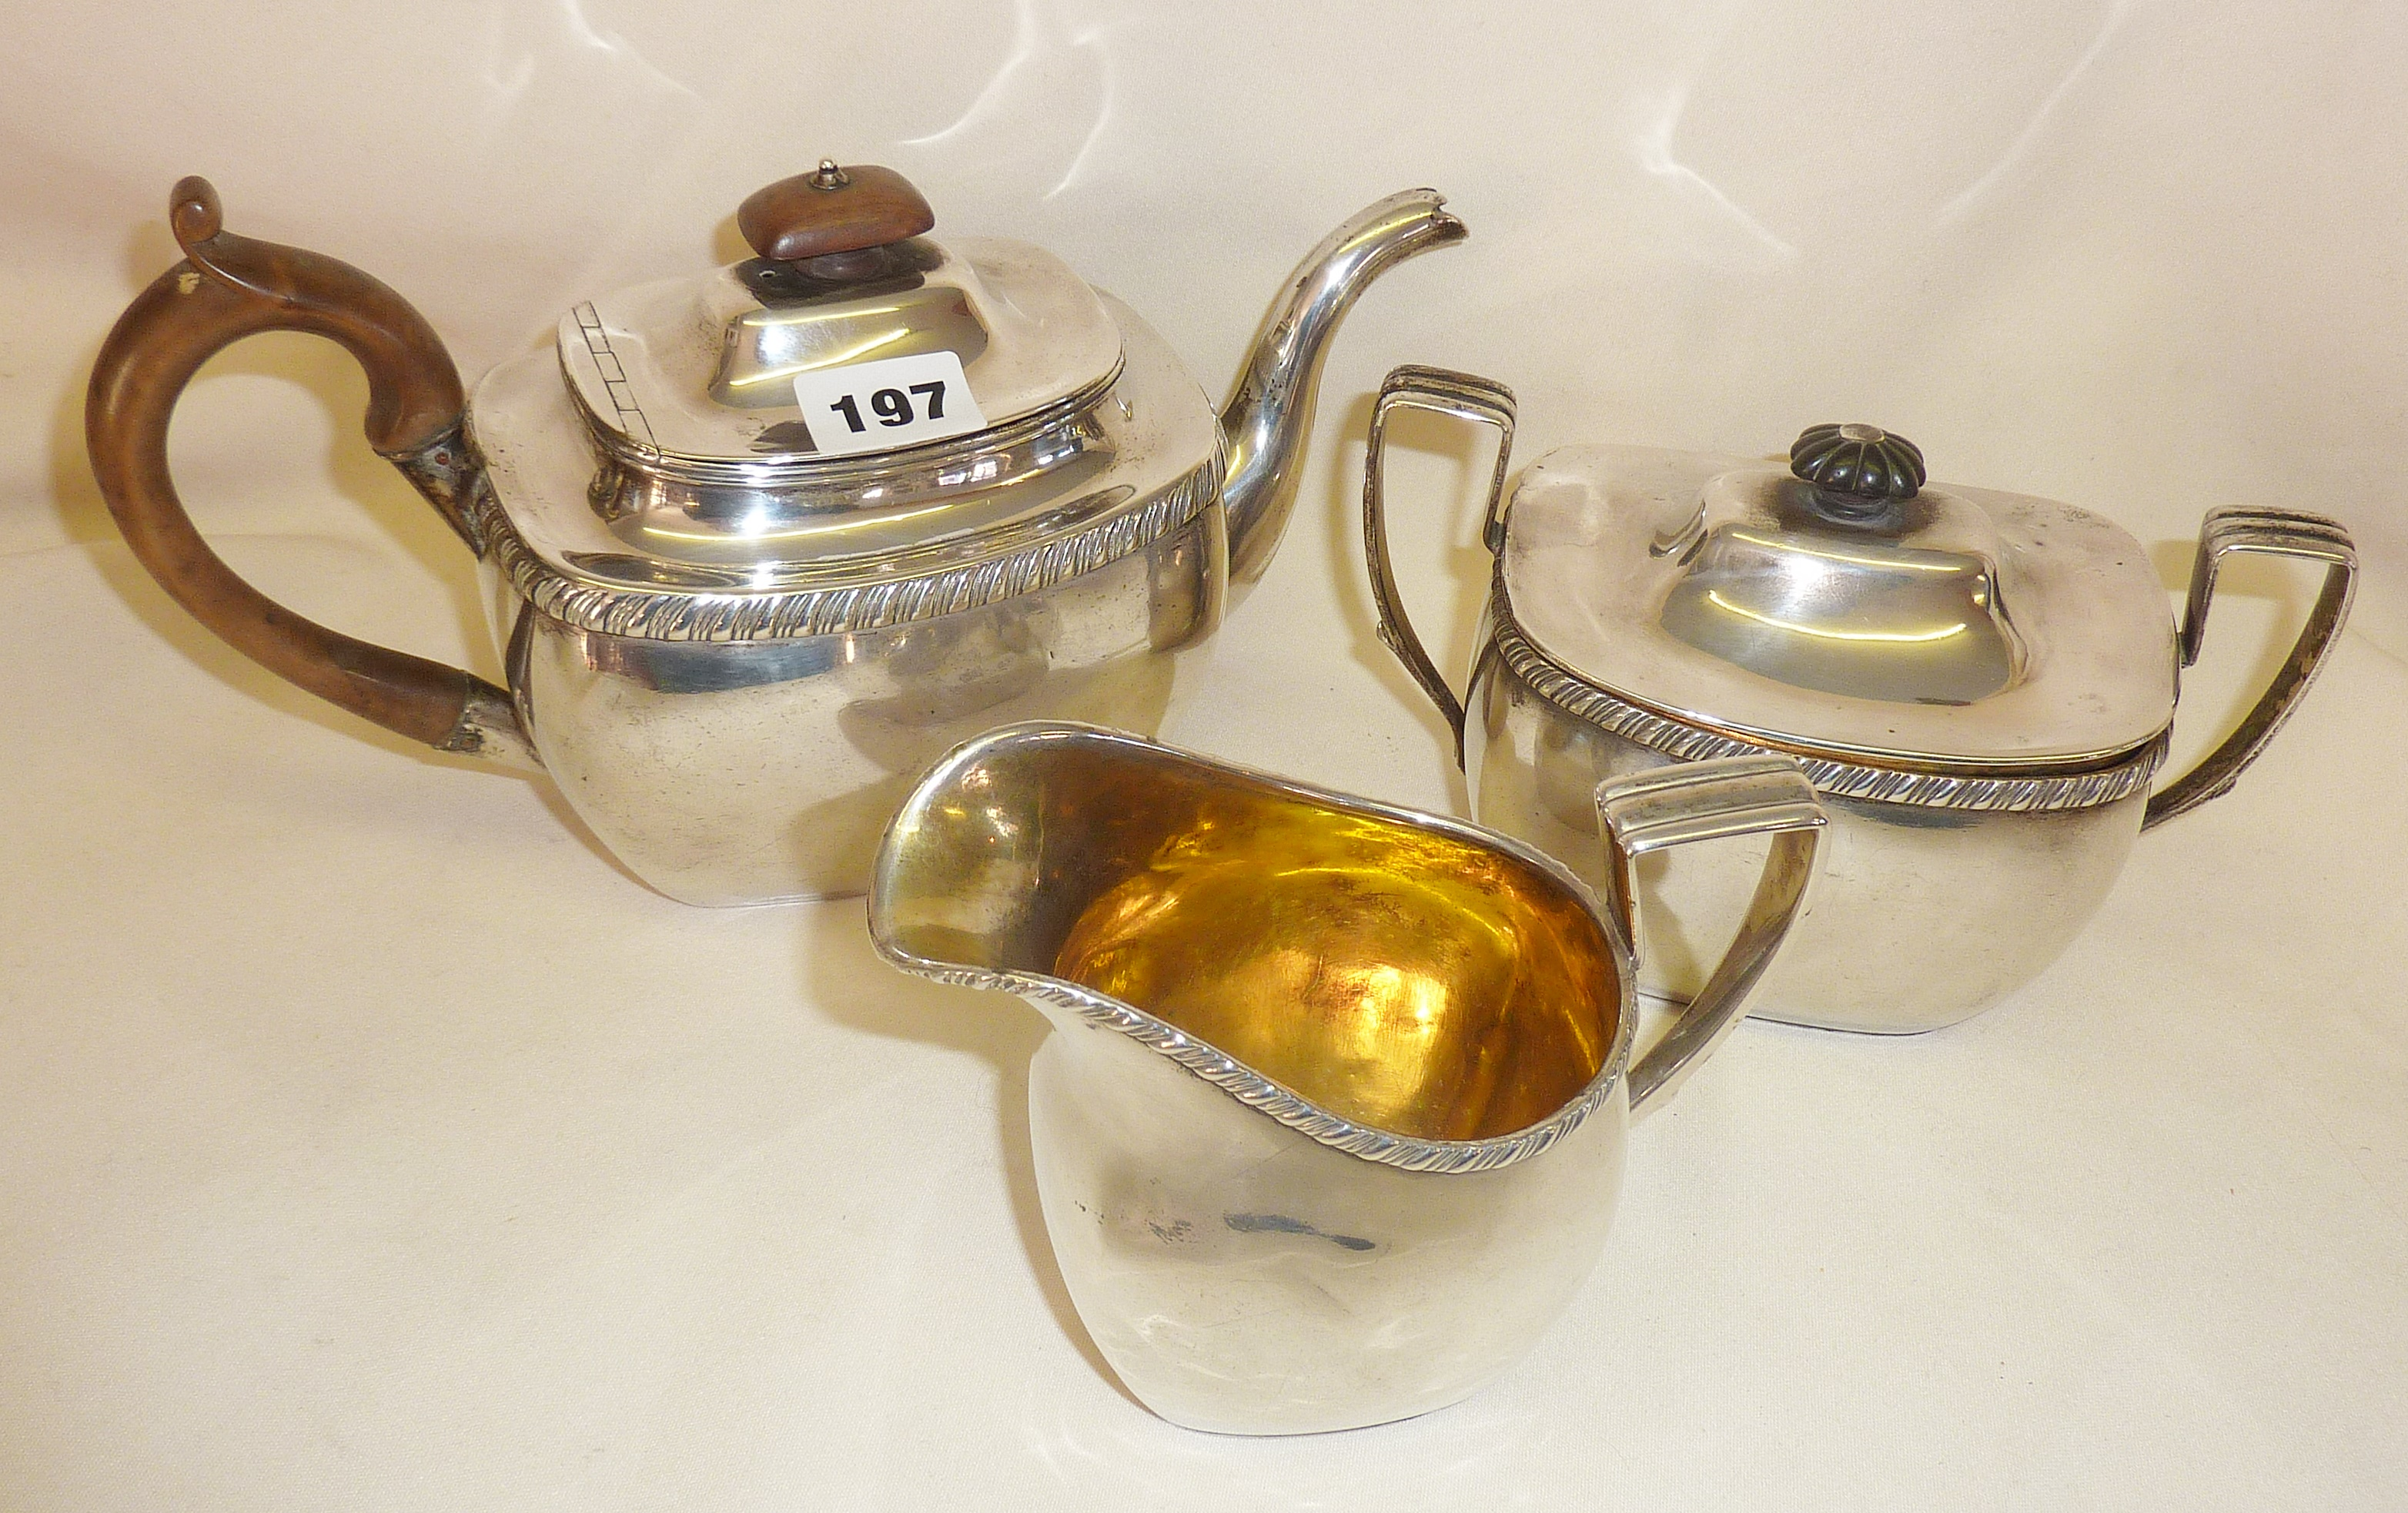 Three piece solid silver tea set with mark for St. Petersburg and engraved date of 1817 (approx